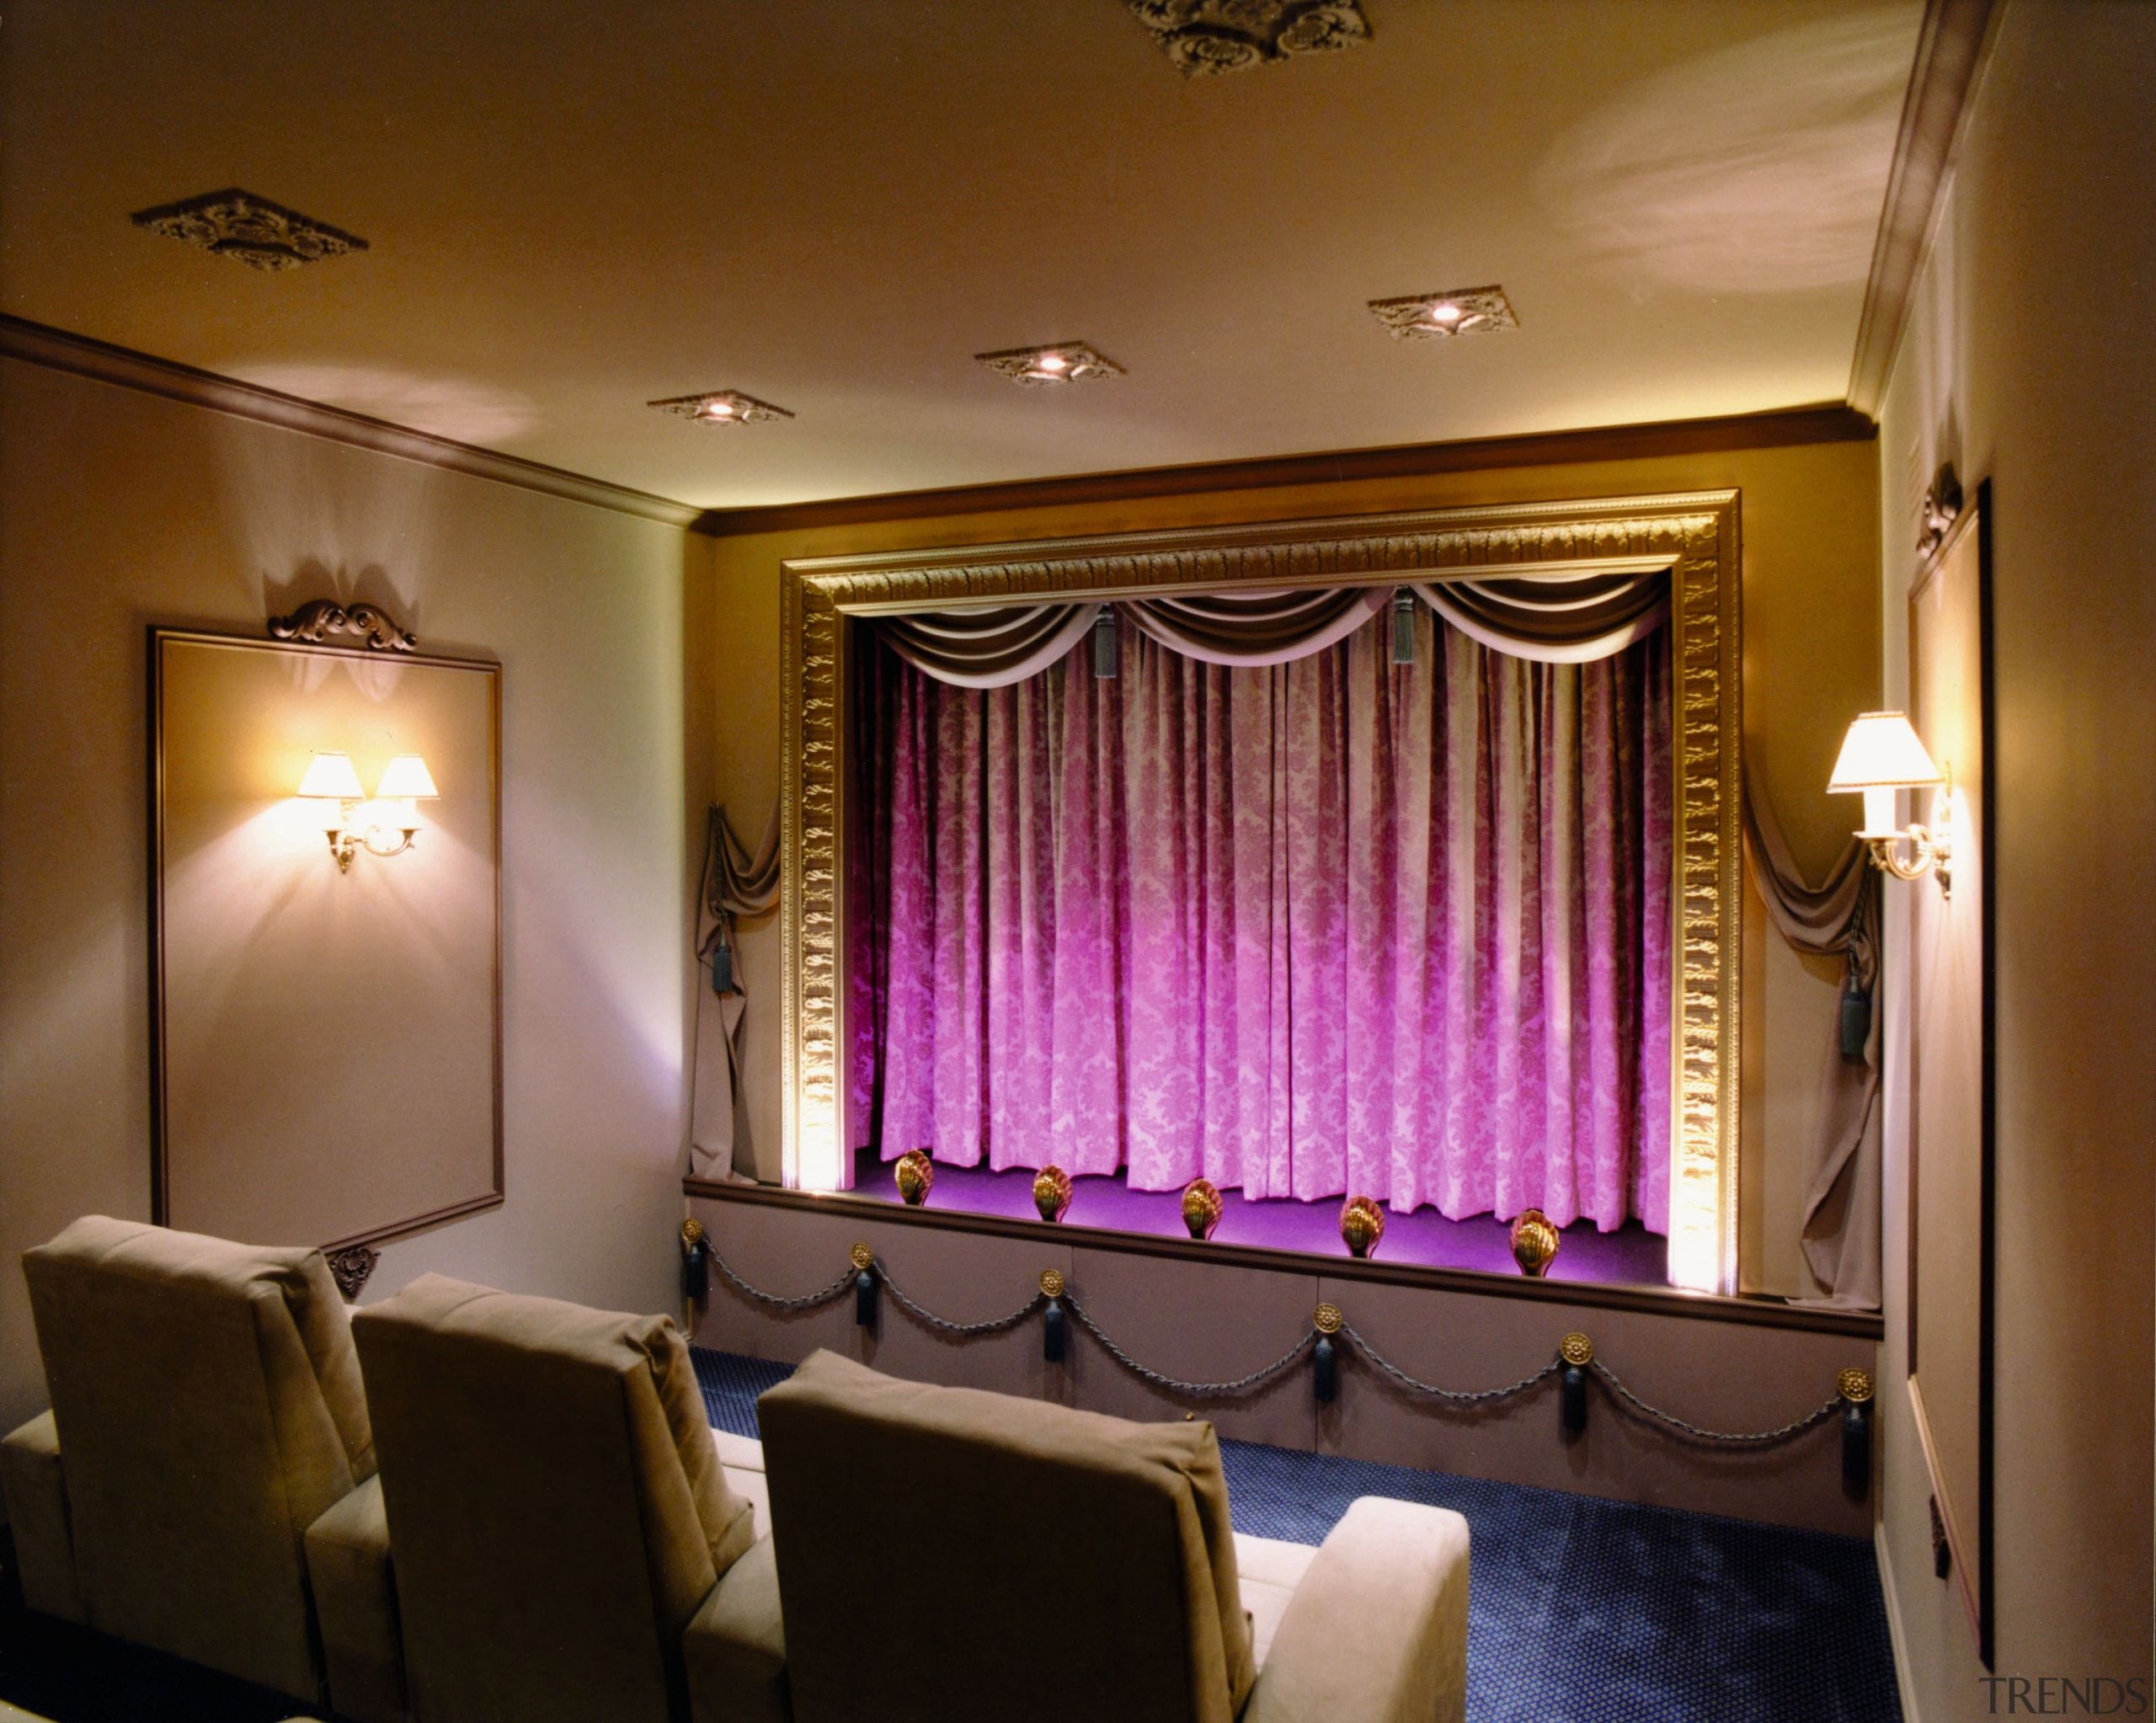 View of a home theatre, cream seats and auditorium, ceiling, curtain, function hall, interior design, light fixture, lighting, room, wall, window treatment, brown